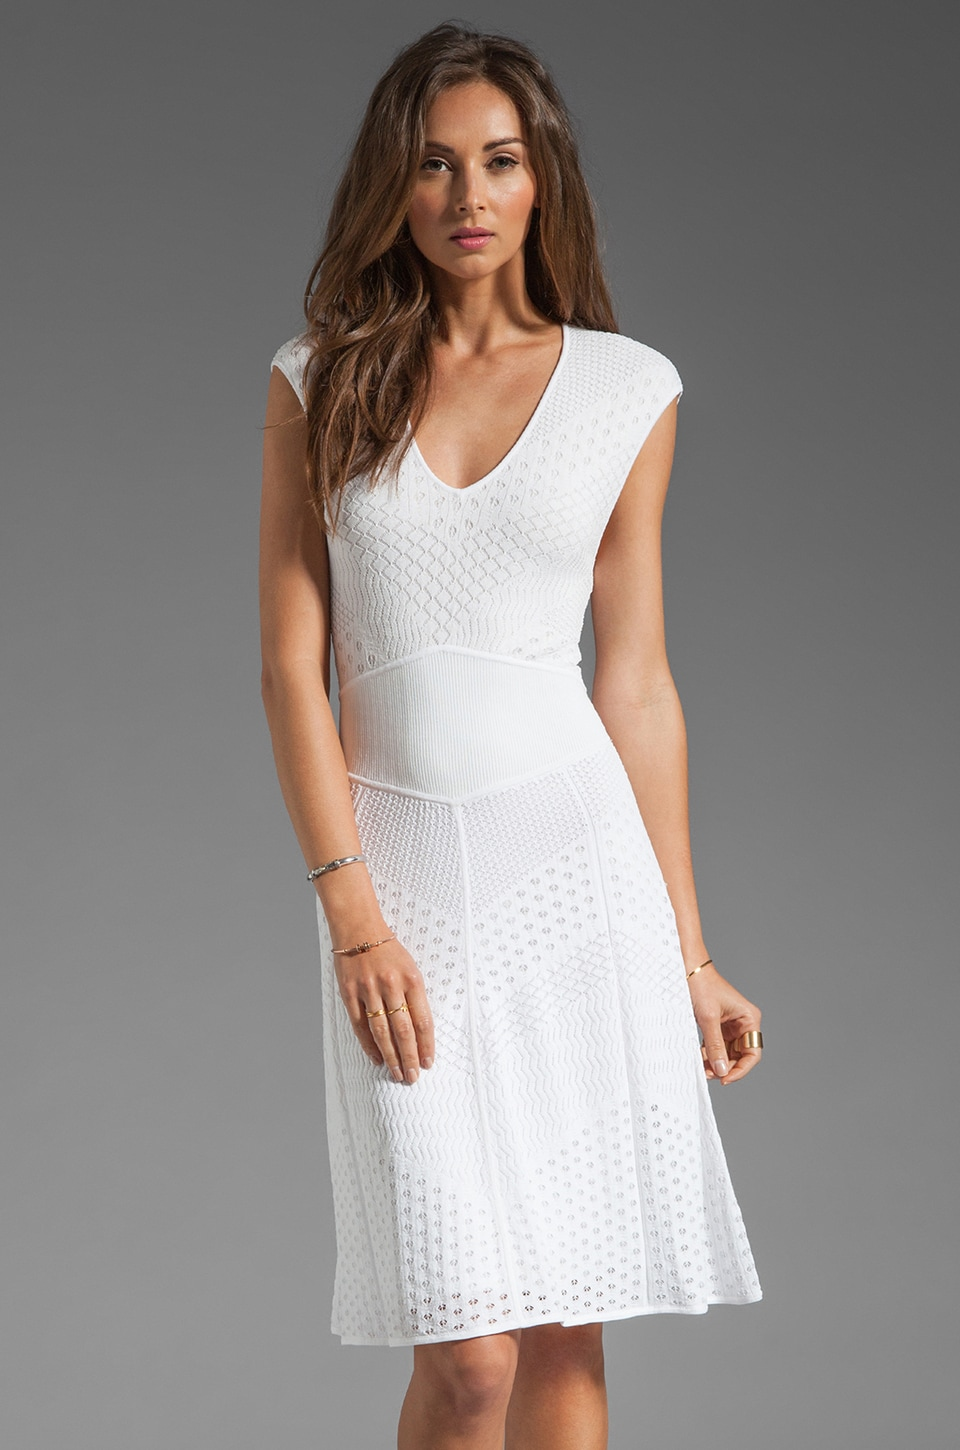 Catherine Malandrino Multi A Line Pointelle Dress in Blanc